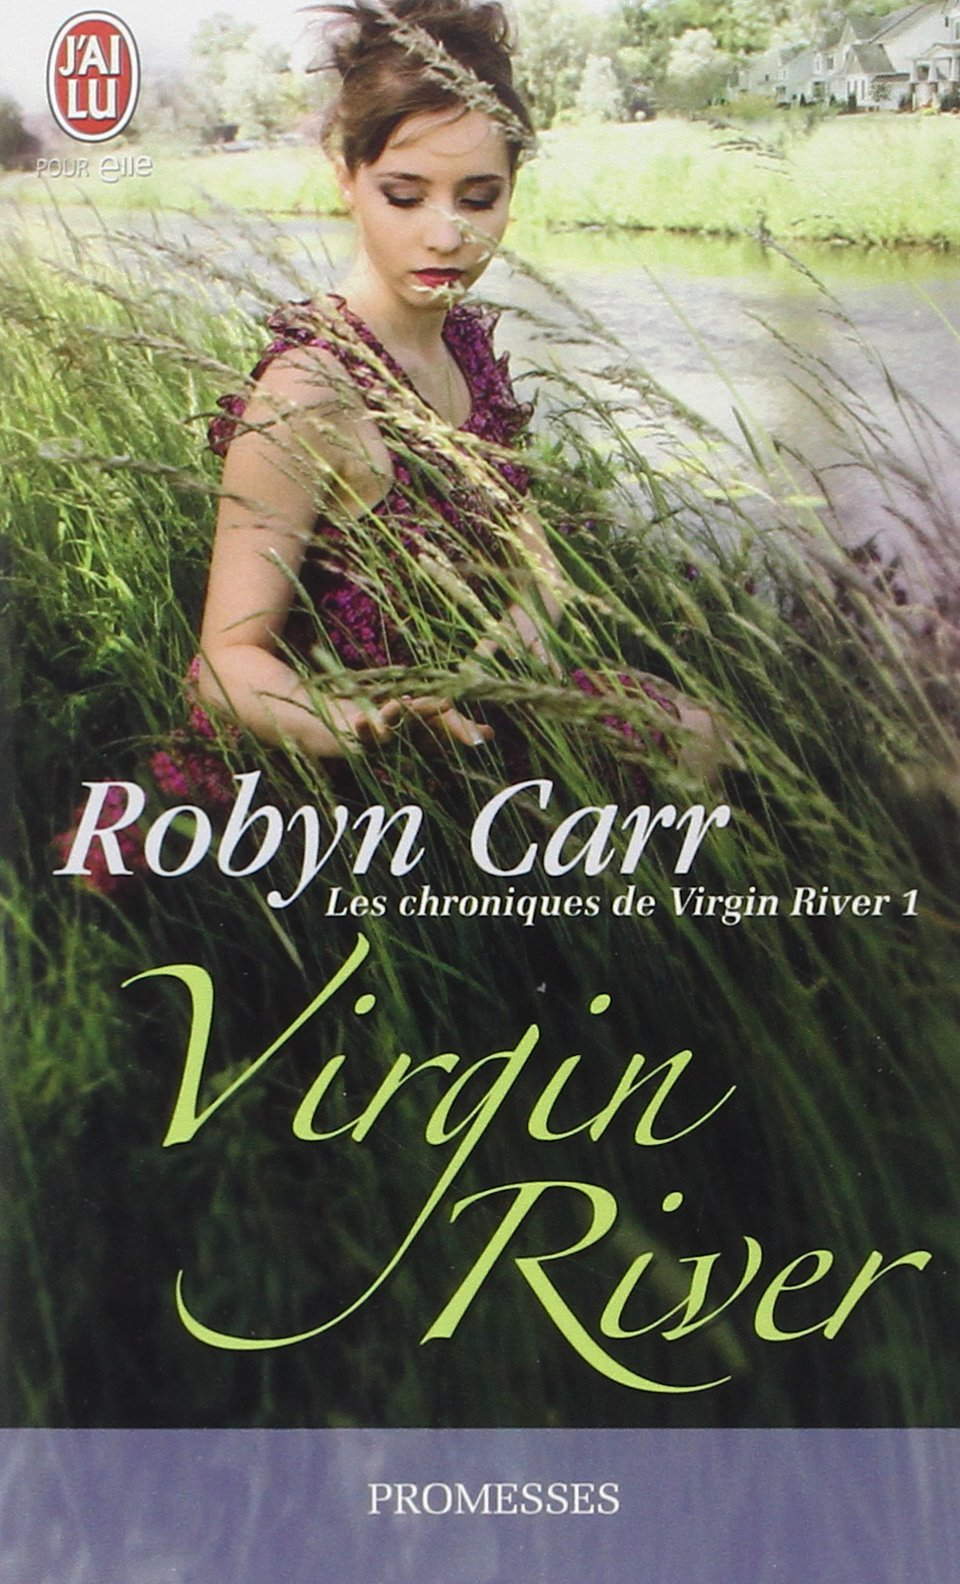 virgin river - Les Chroniques de Virgin River - Tome 1: Virgin River - Robyn Carr 81aDIGh0uQL